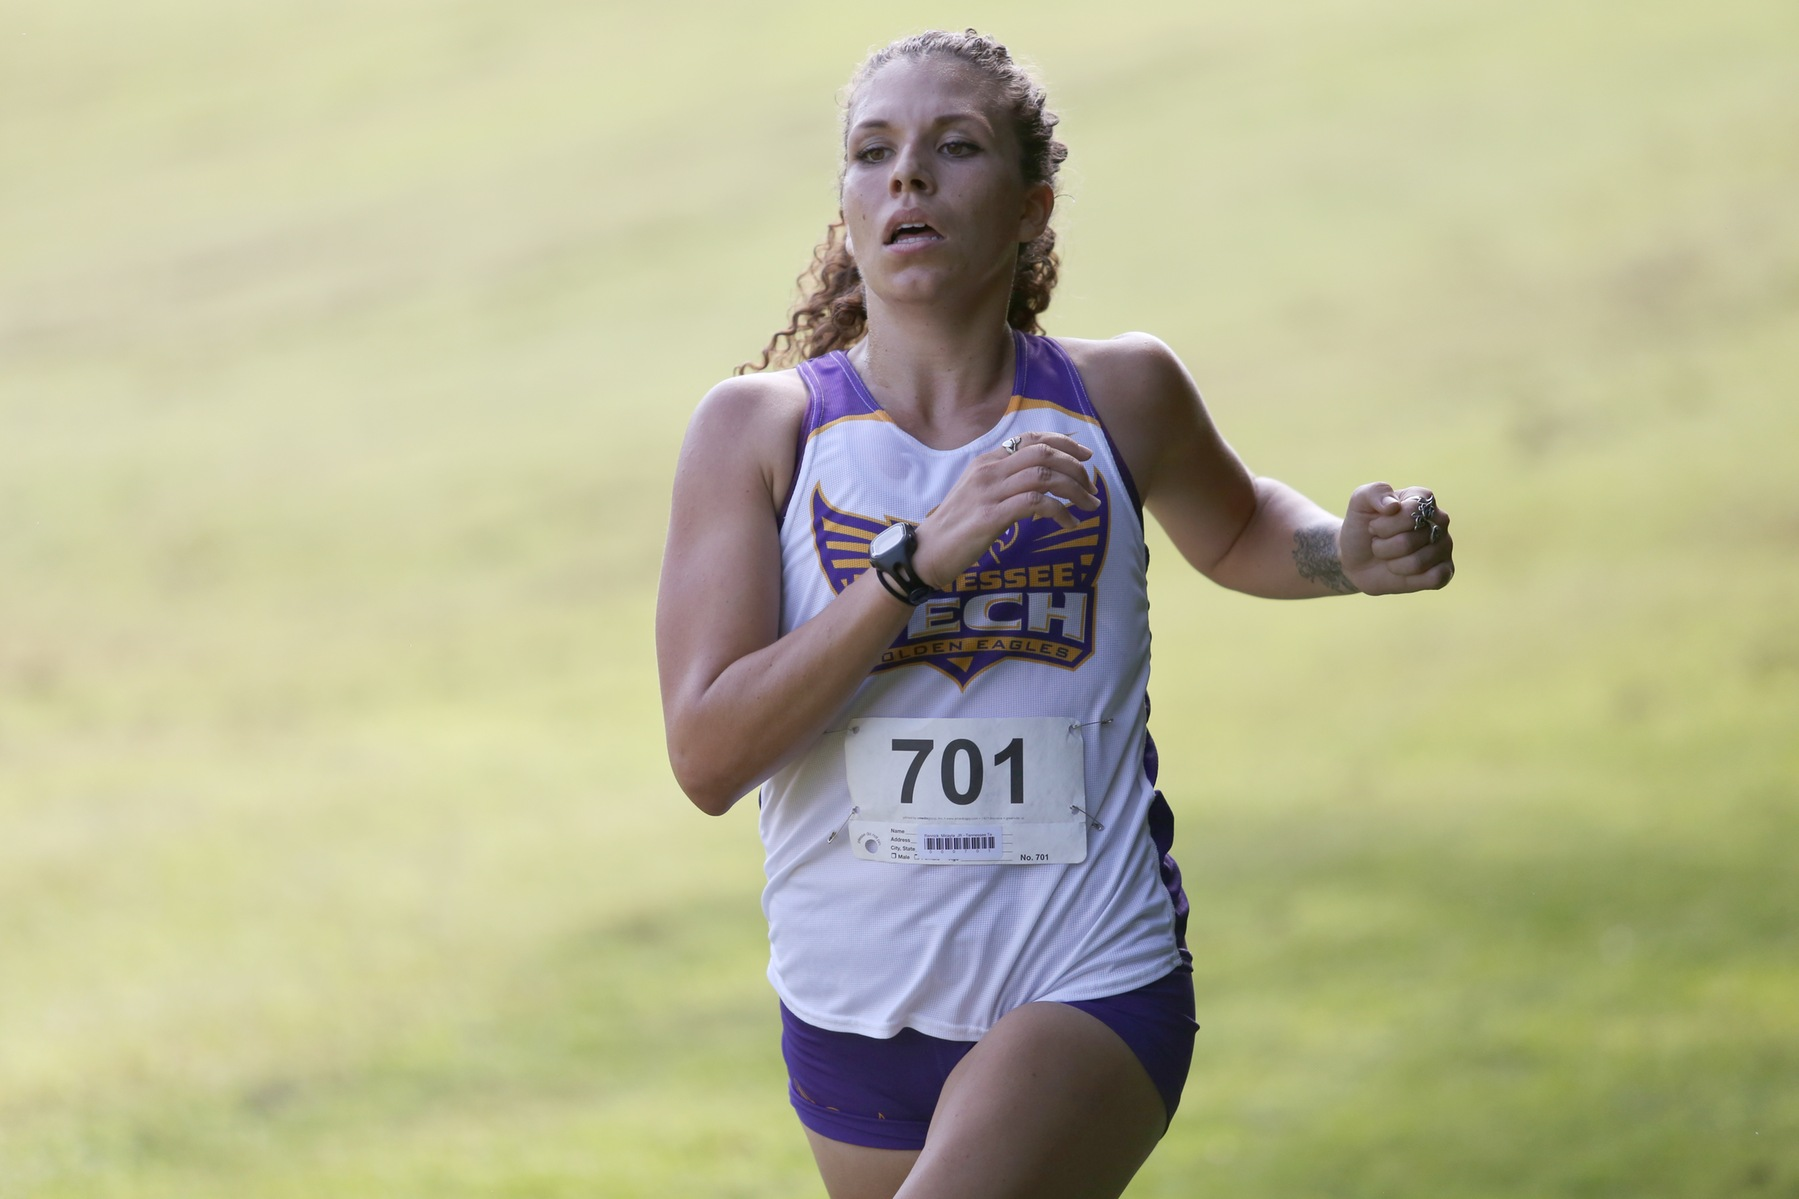 Tech cross country to open at home with Golden Eagle Invitational presented by Hometown IGA